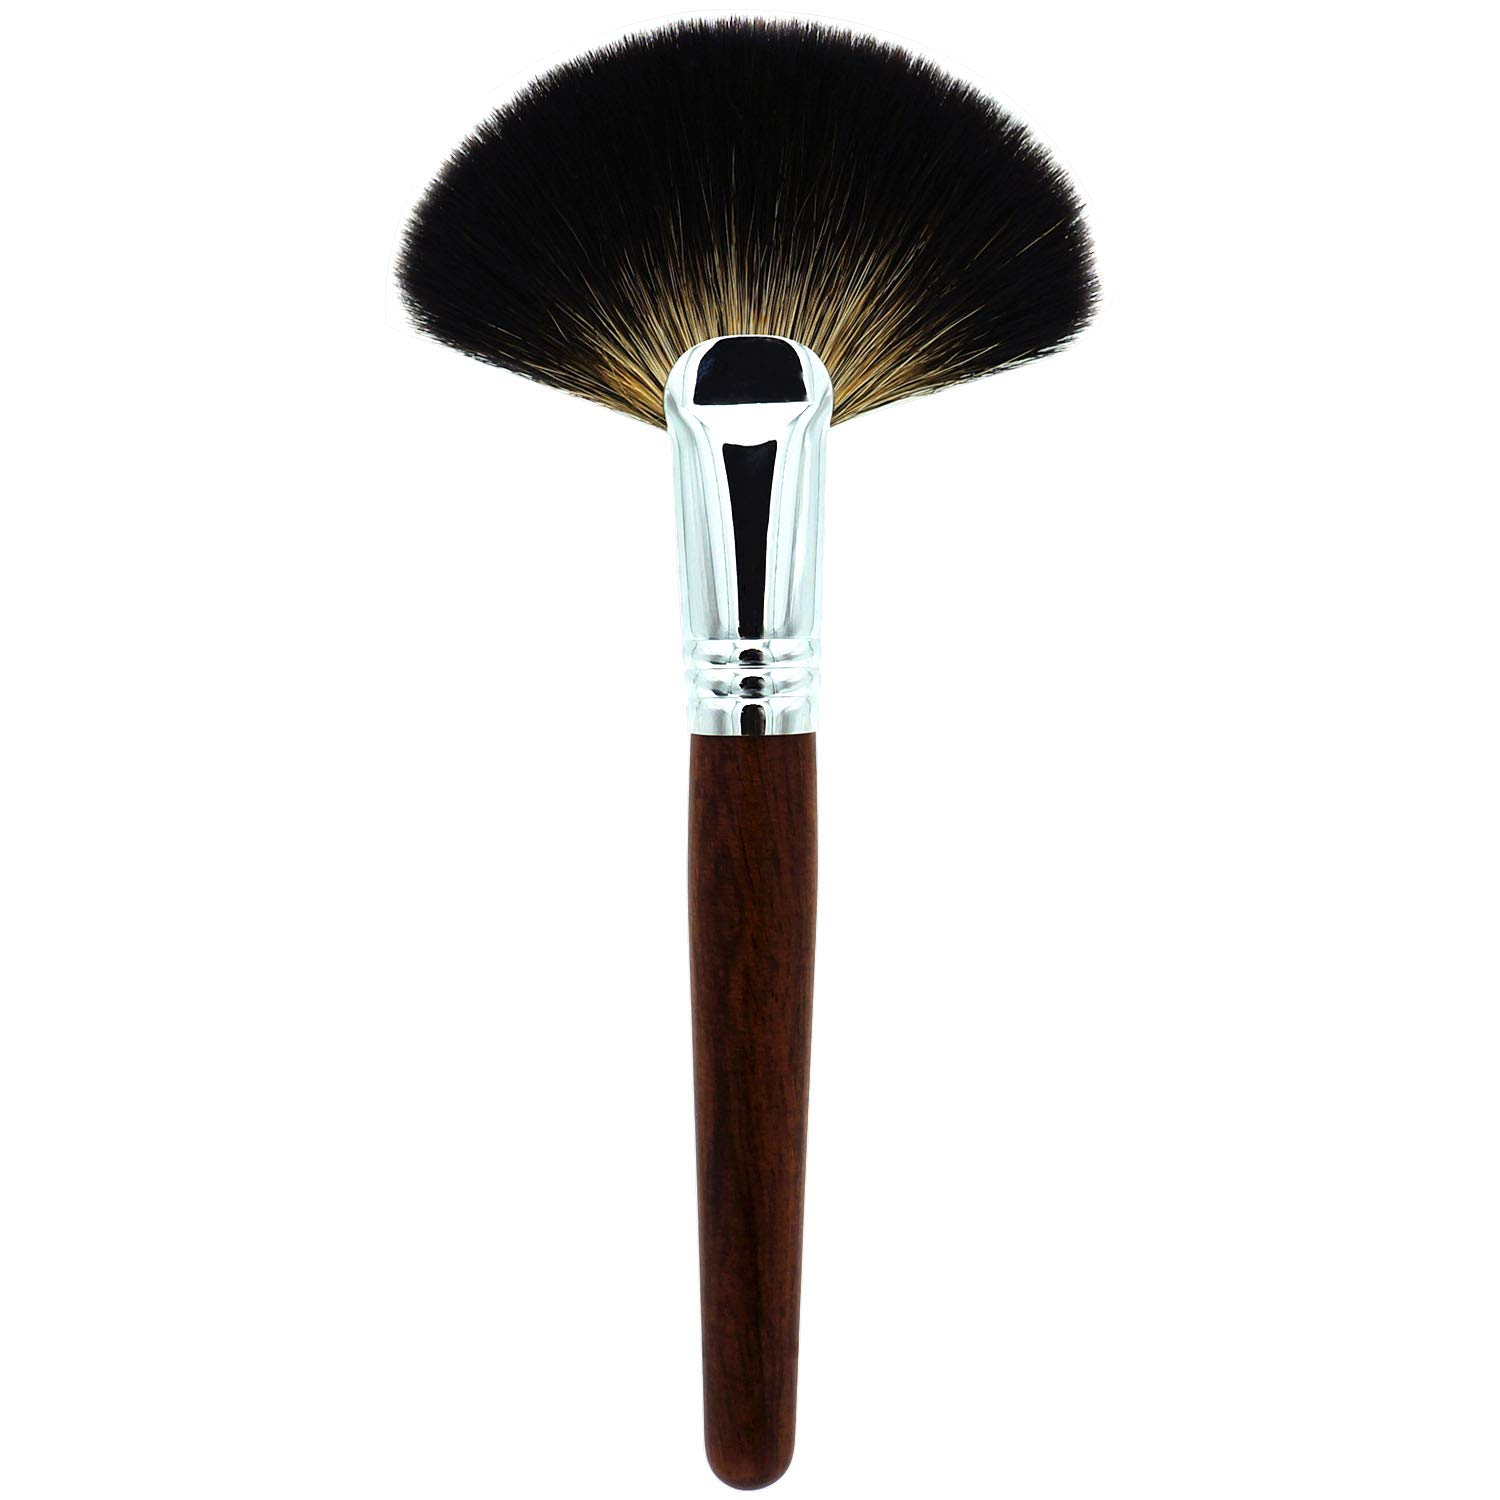 Amazon Com Lovchu Racoon Animal Hair Professional Fan Makeup Brush With Mahogany Handles For Powder Mineral Perfect For Blending Face Highlighting Application Blend Coverage Buffing Cosmetics Make Up Tool Beauty